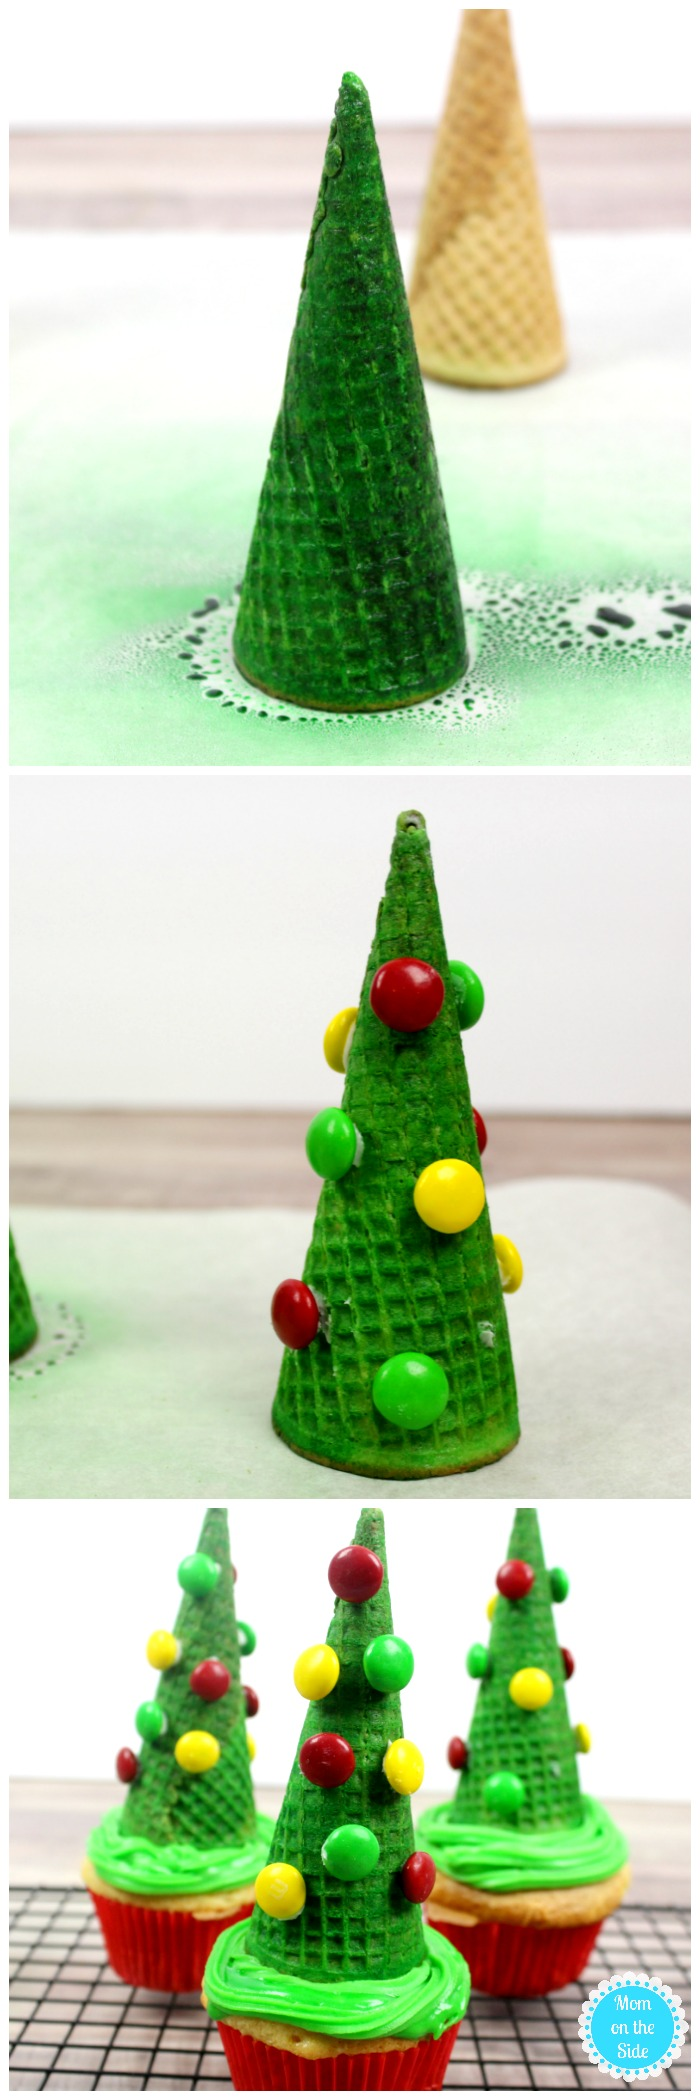 Making Christmas Tree Cupcakes for Kids